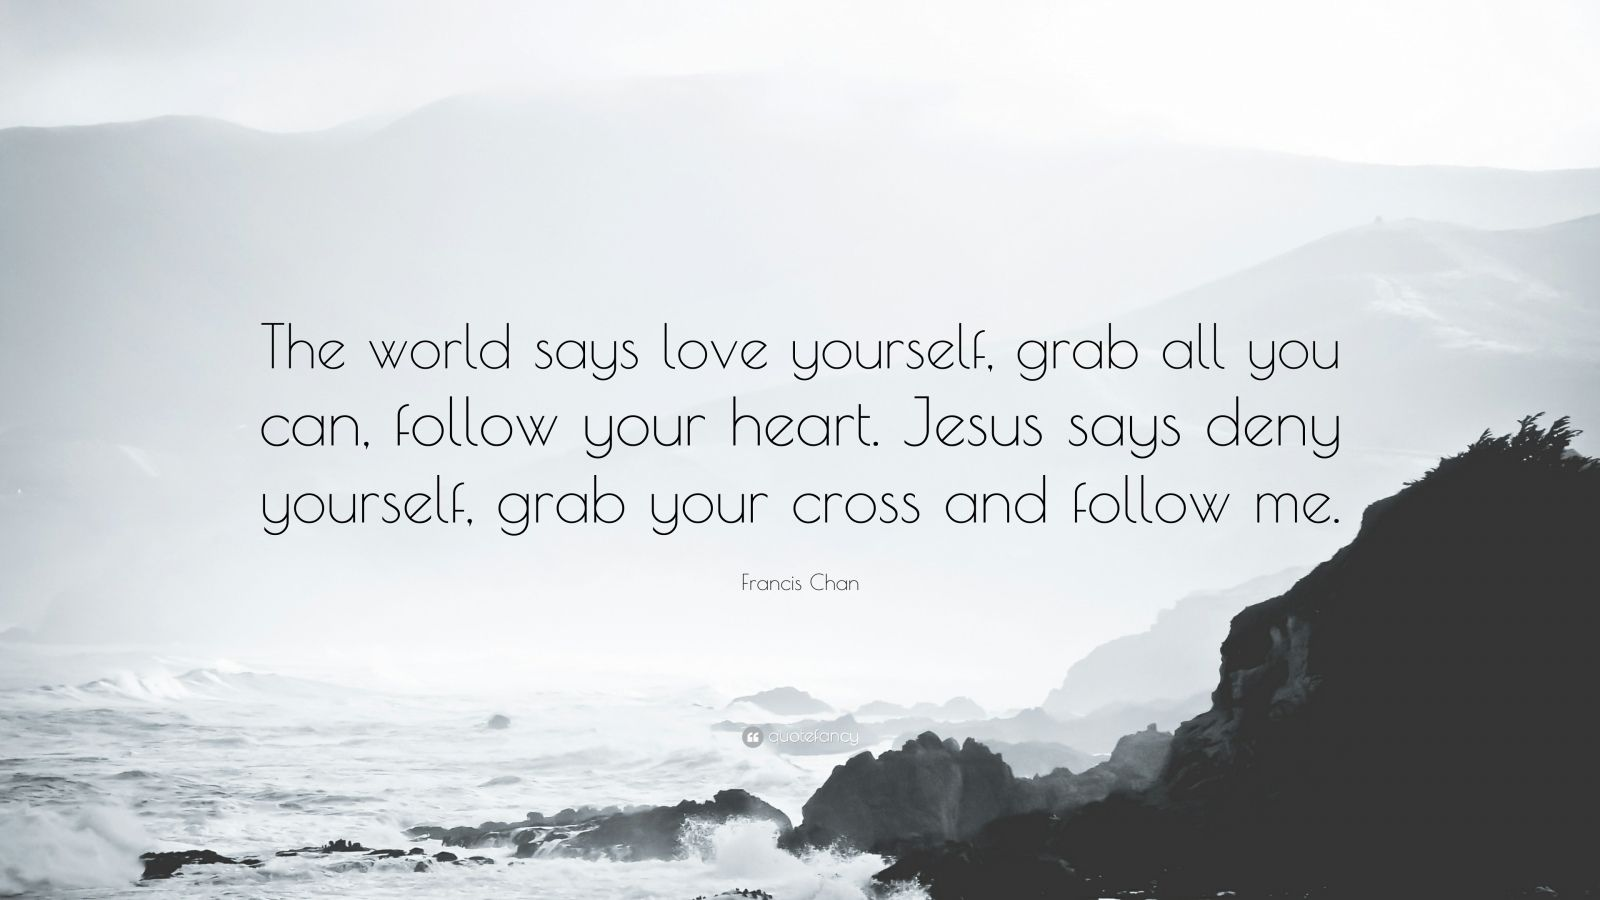 Jesus Quotes About Love Francis Chan Quotes 100 Wallpapers  Quotefancy